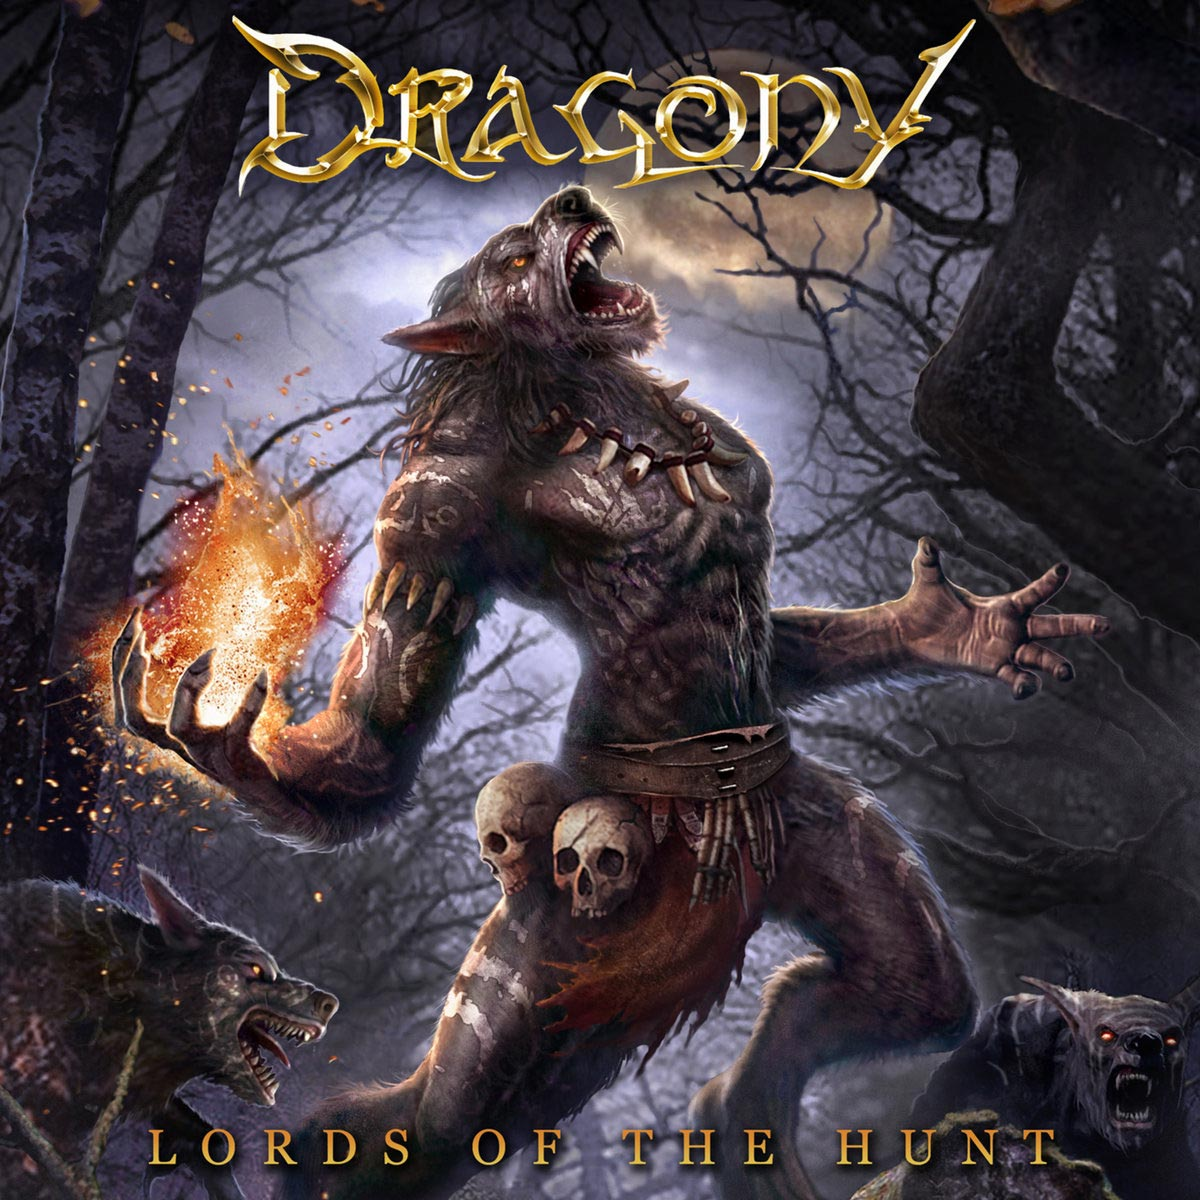 Dragony - Lords of the Hunt